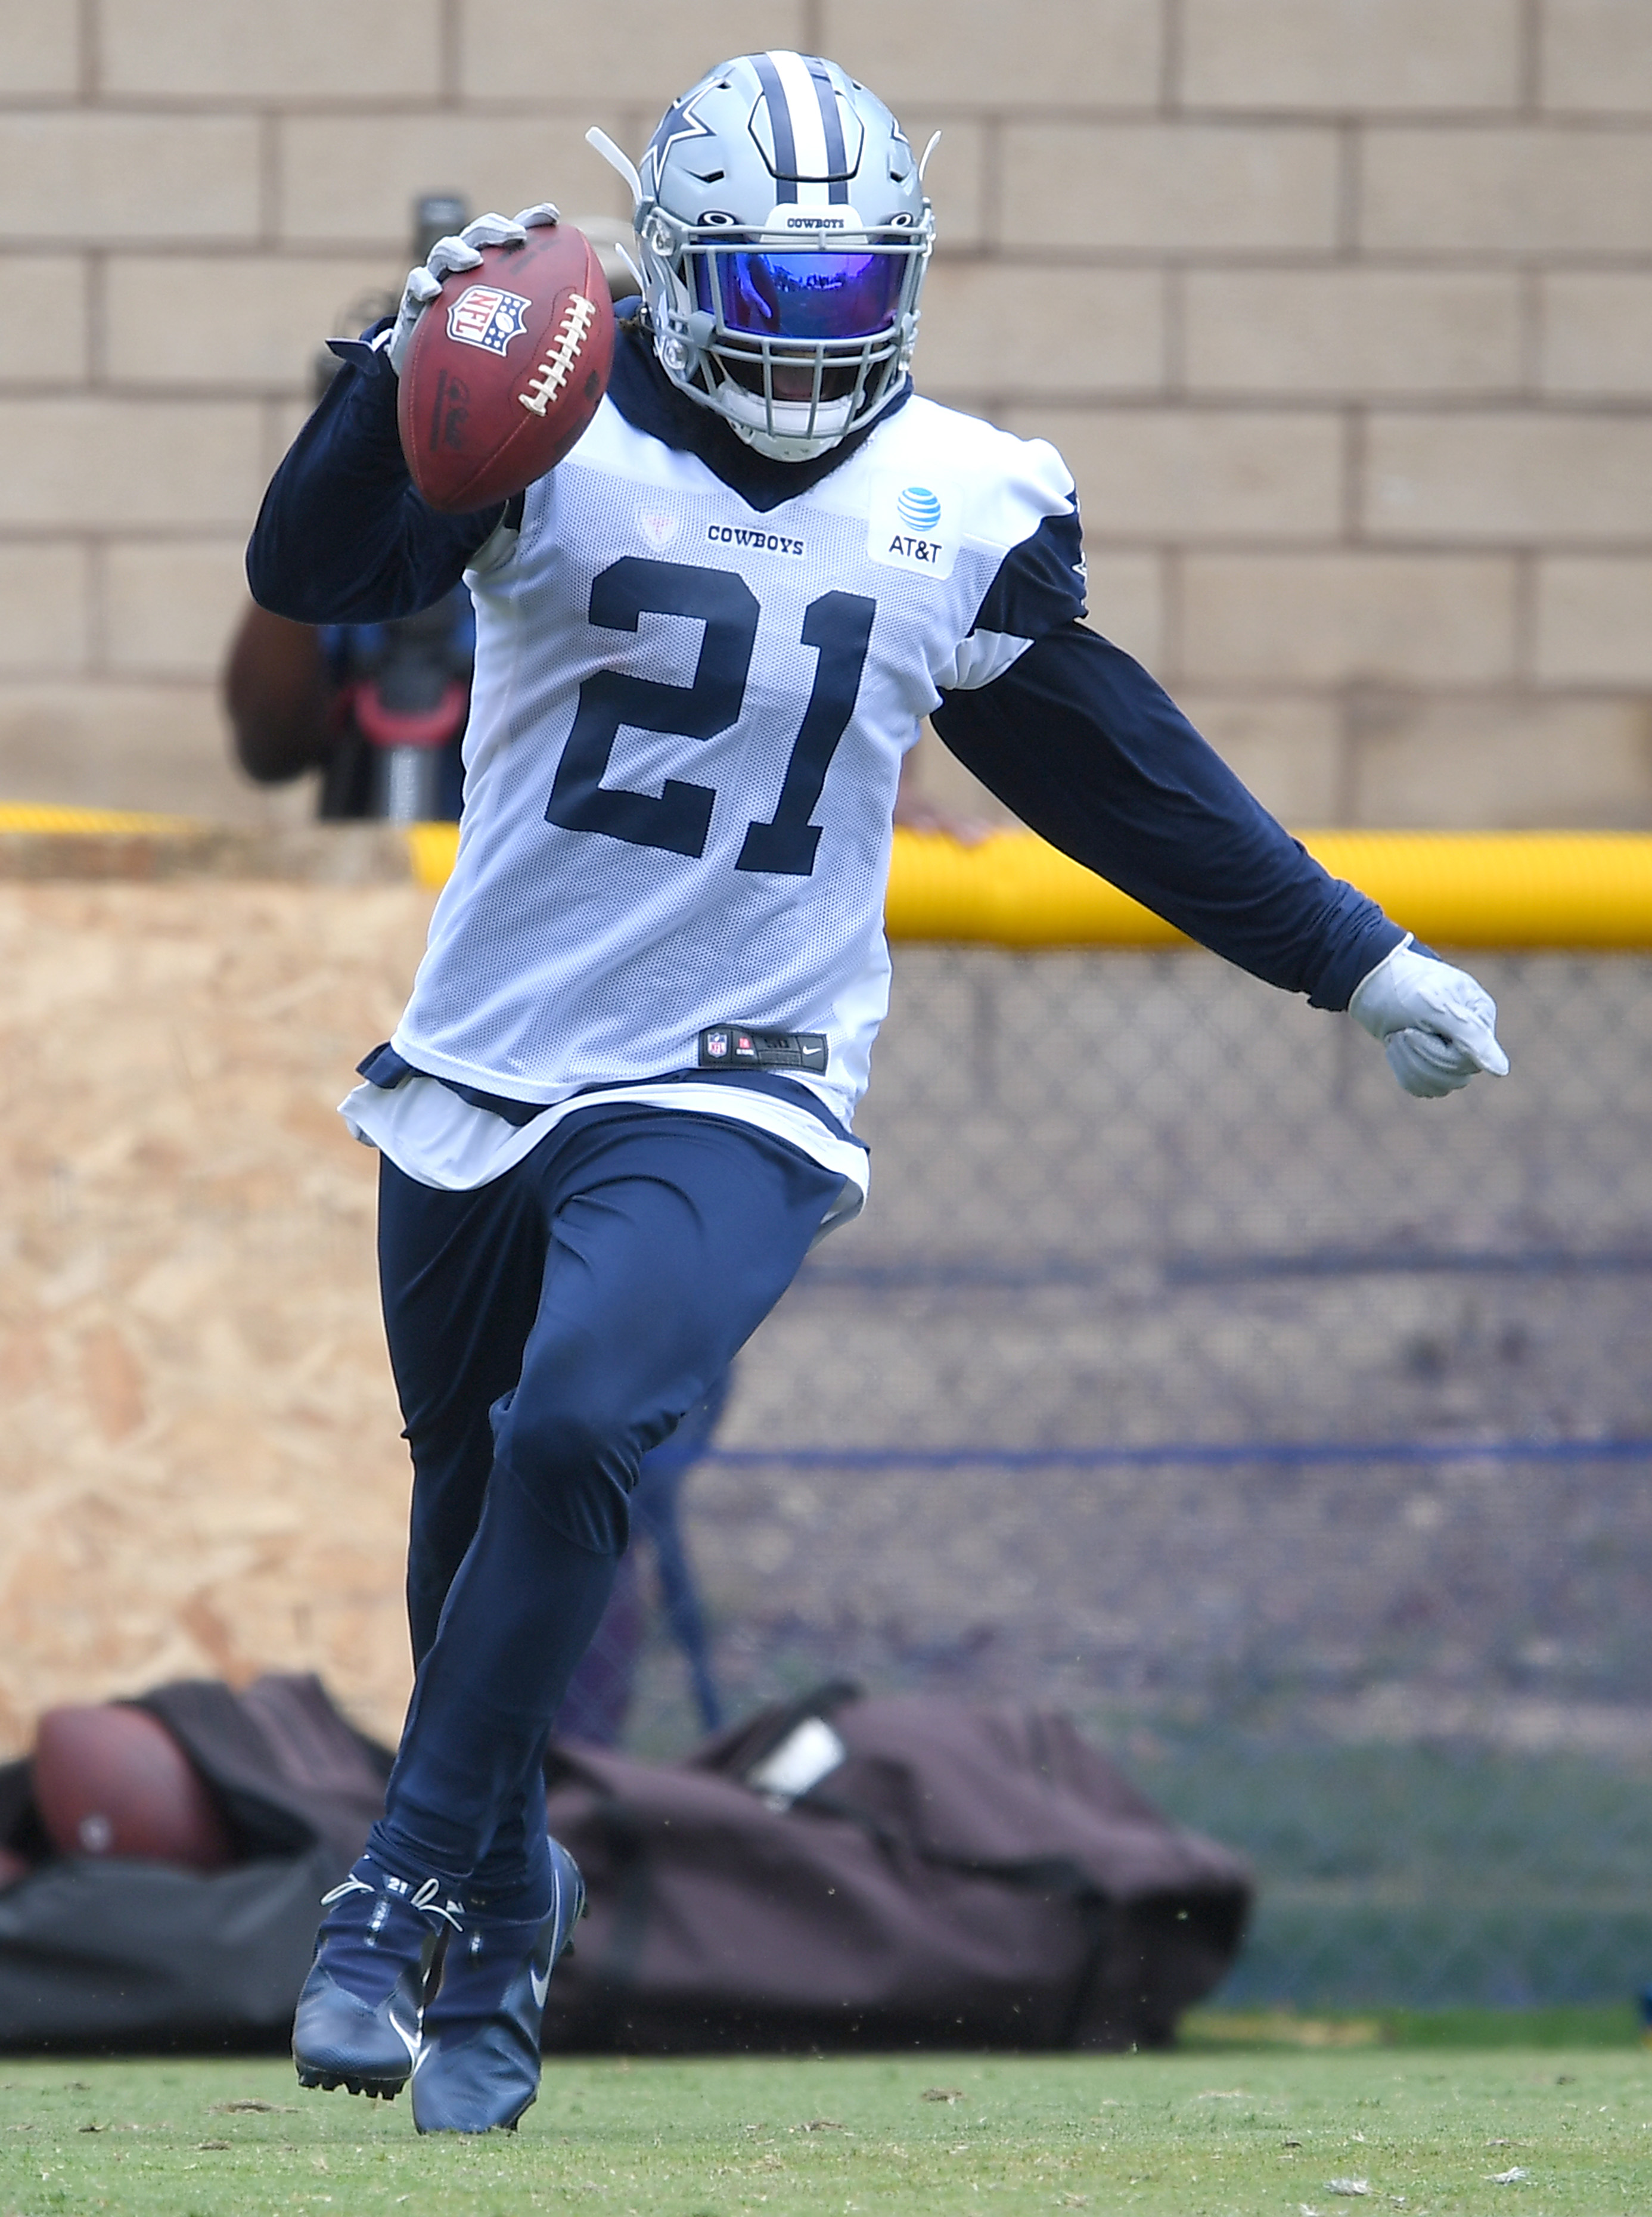 Running back Ezekiel Elliott #21 of the Dallas Cowboys catches a pass during training camp at River Ridge Complex on July 24, 2021 in Oxnard, California.